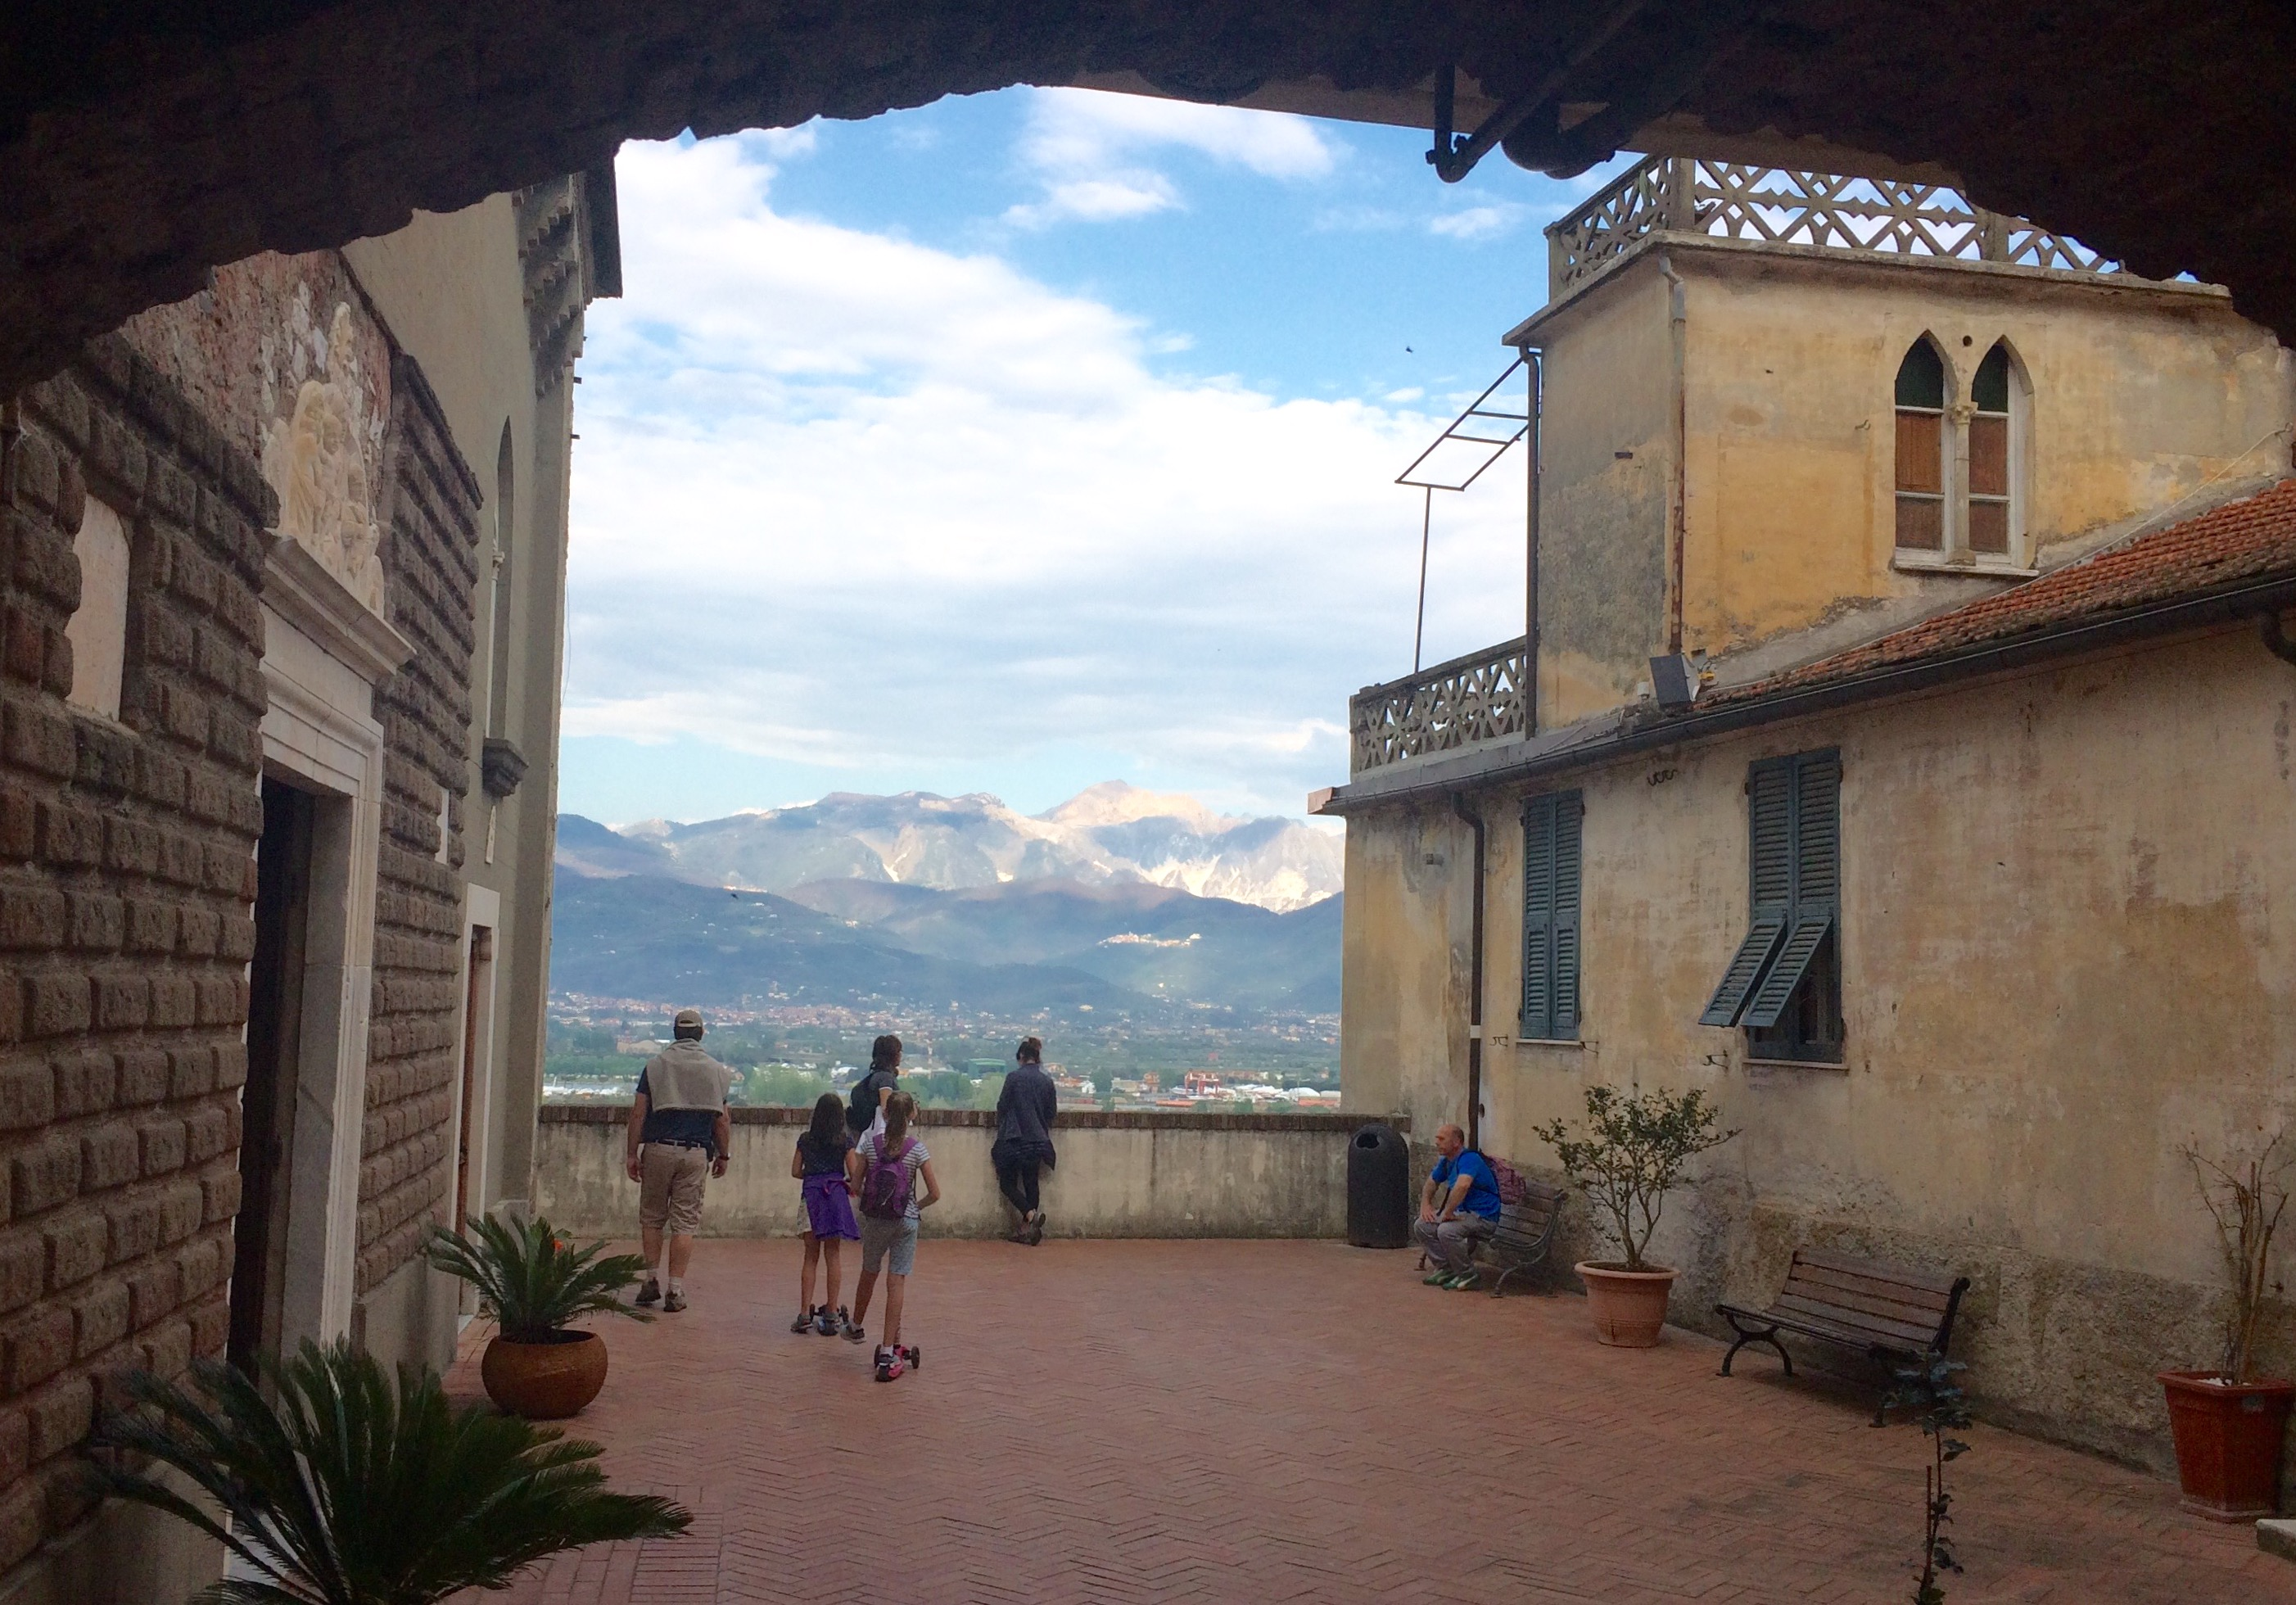 Liguria - view of Apuan Alps from Ameglia old town